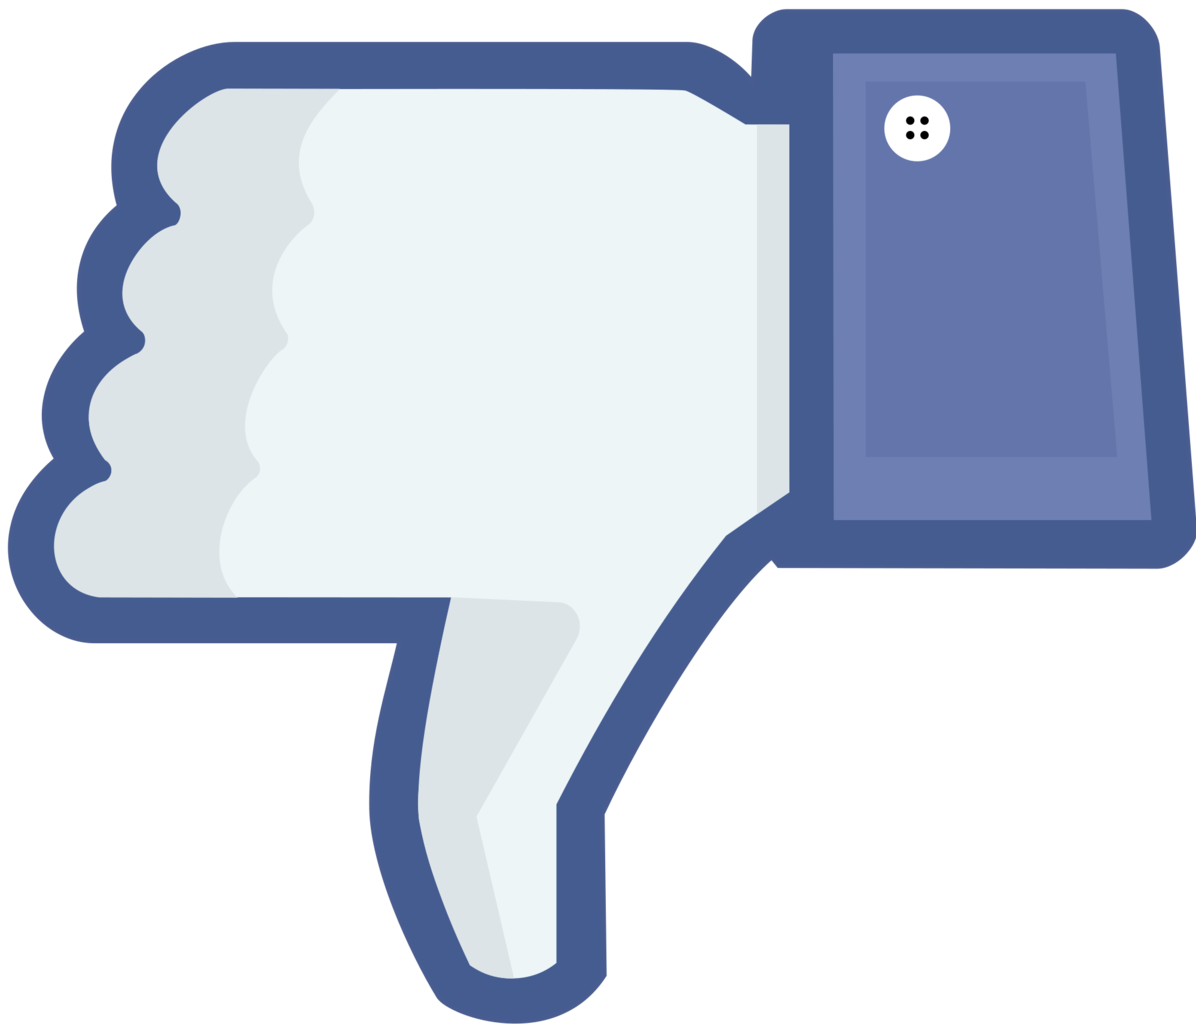 Facebook clipart square. Thumbs down clip art